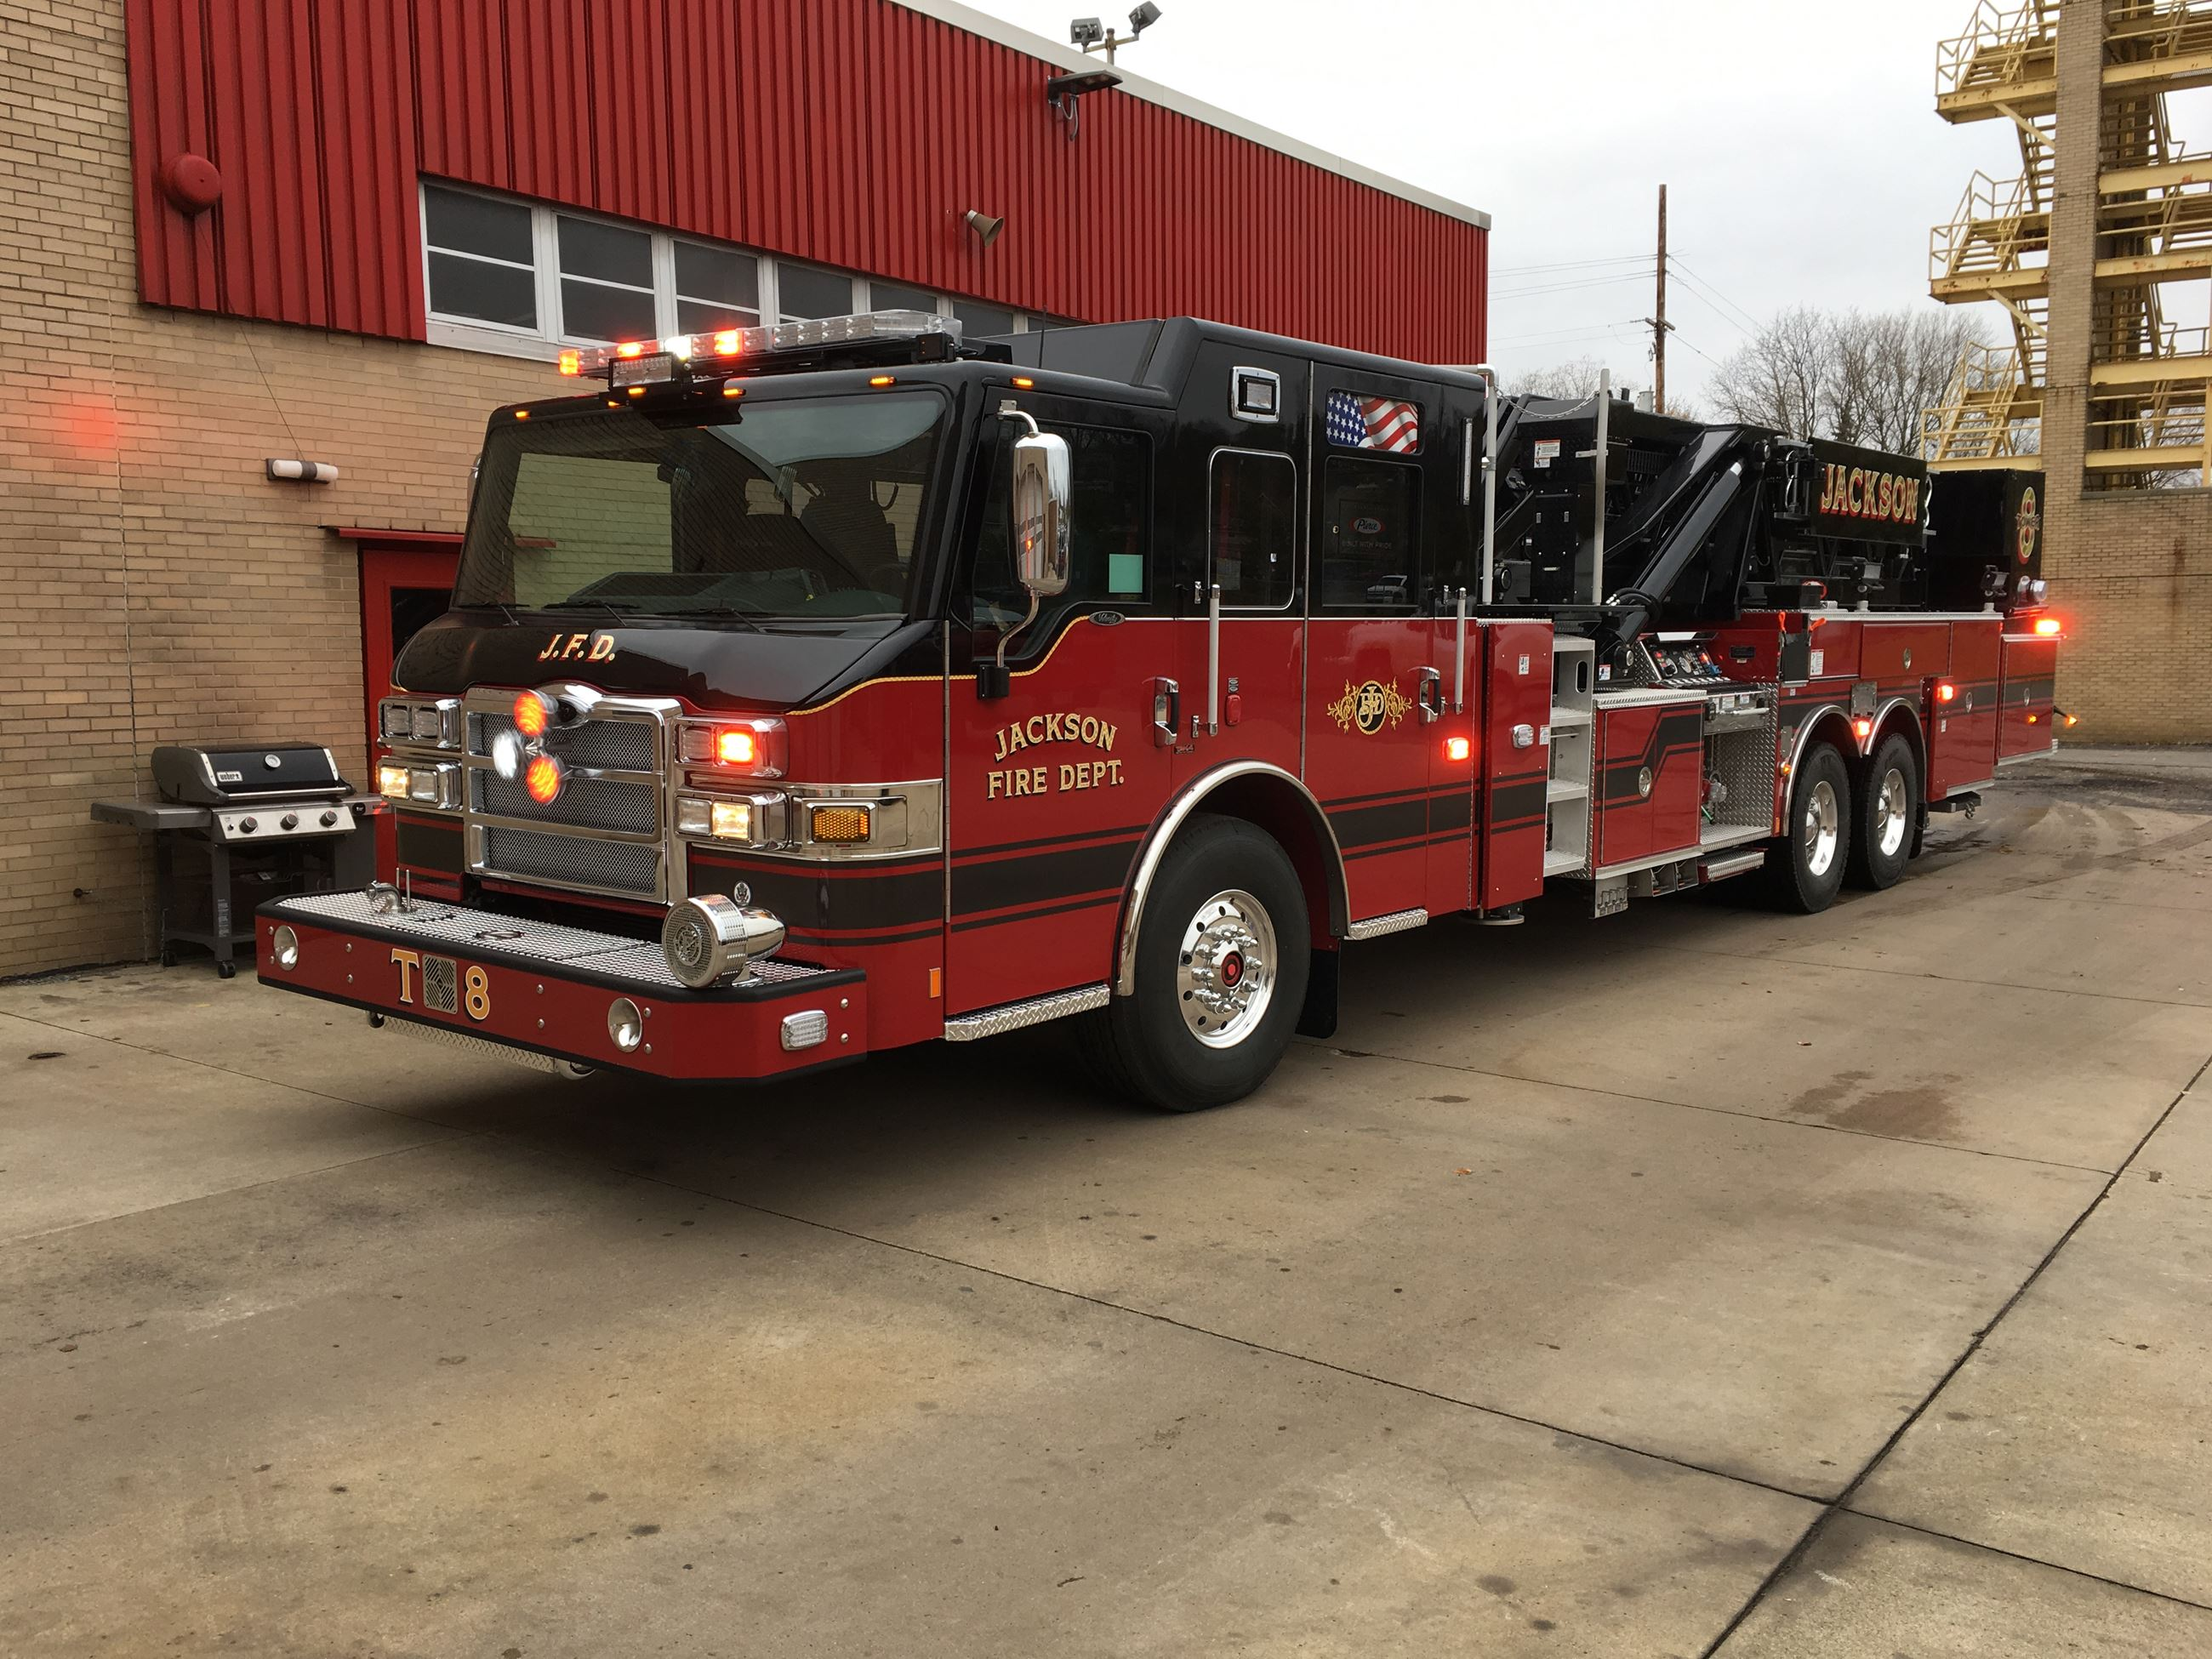 New fire truck in Jackson